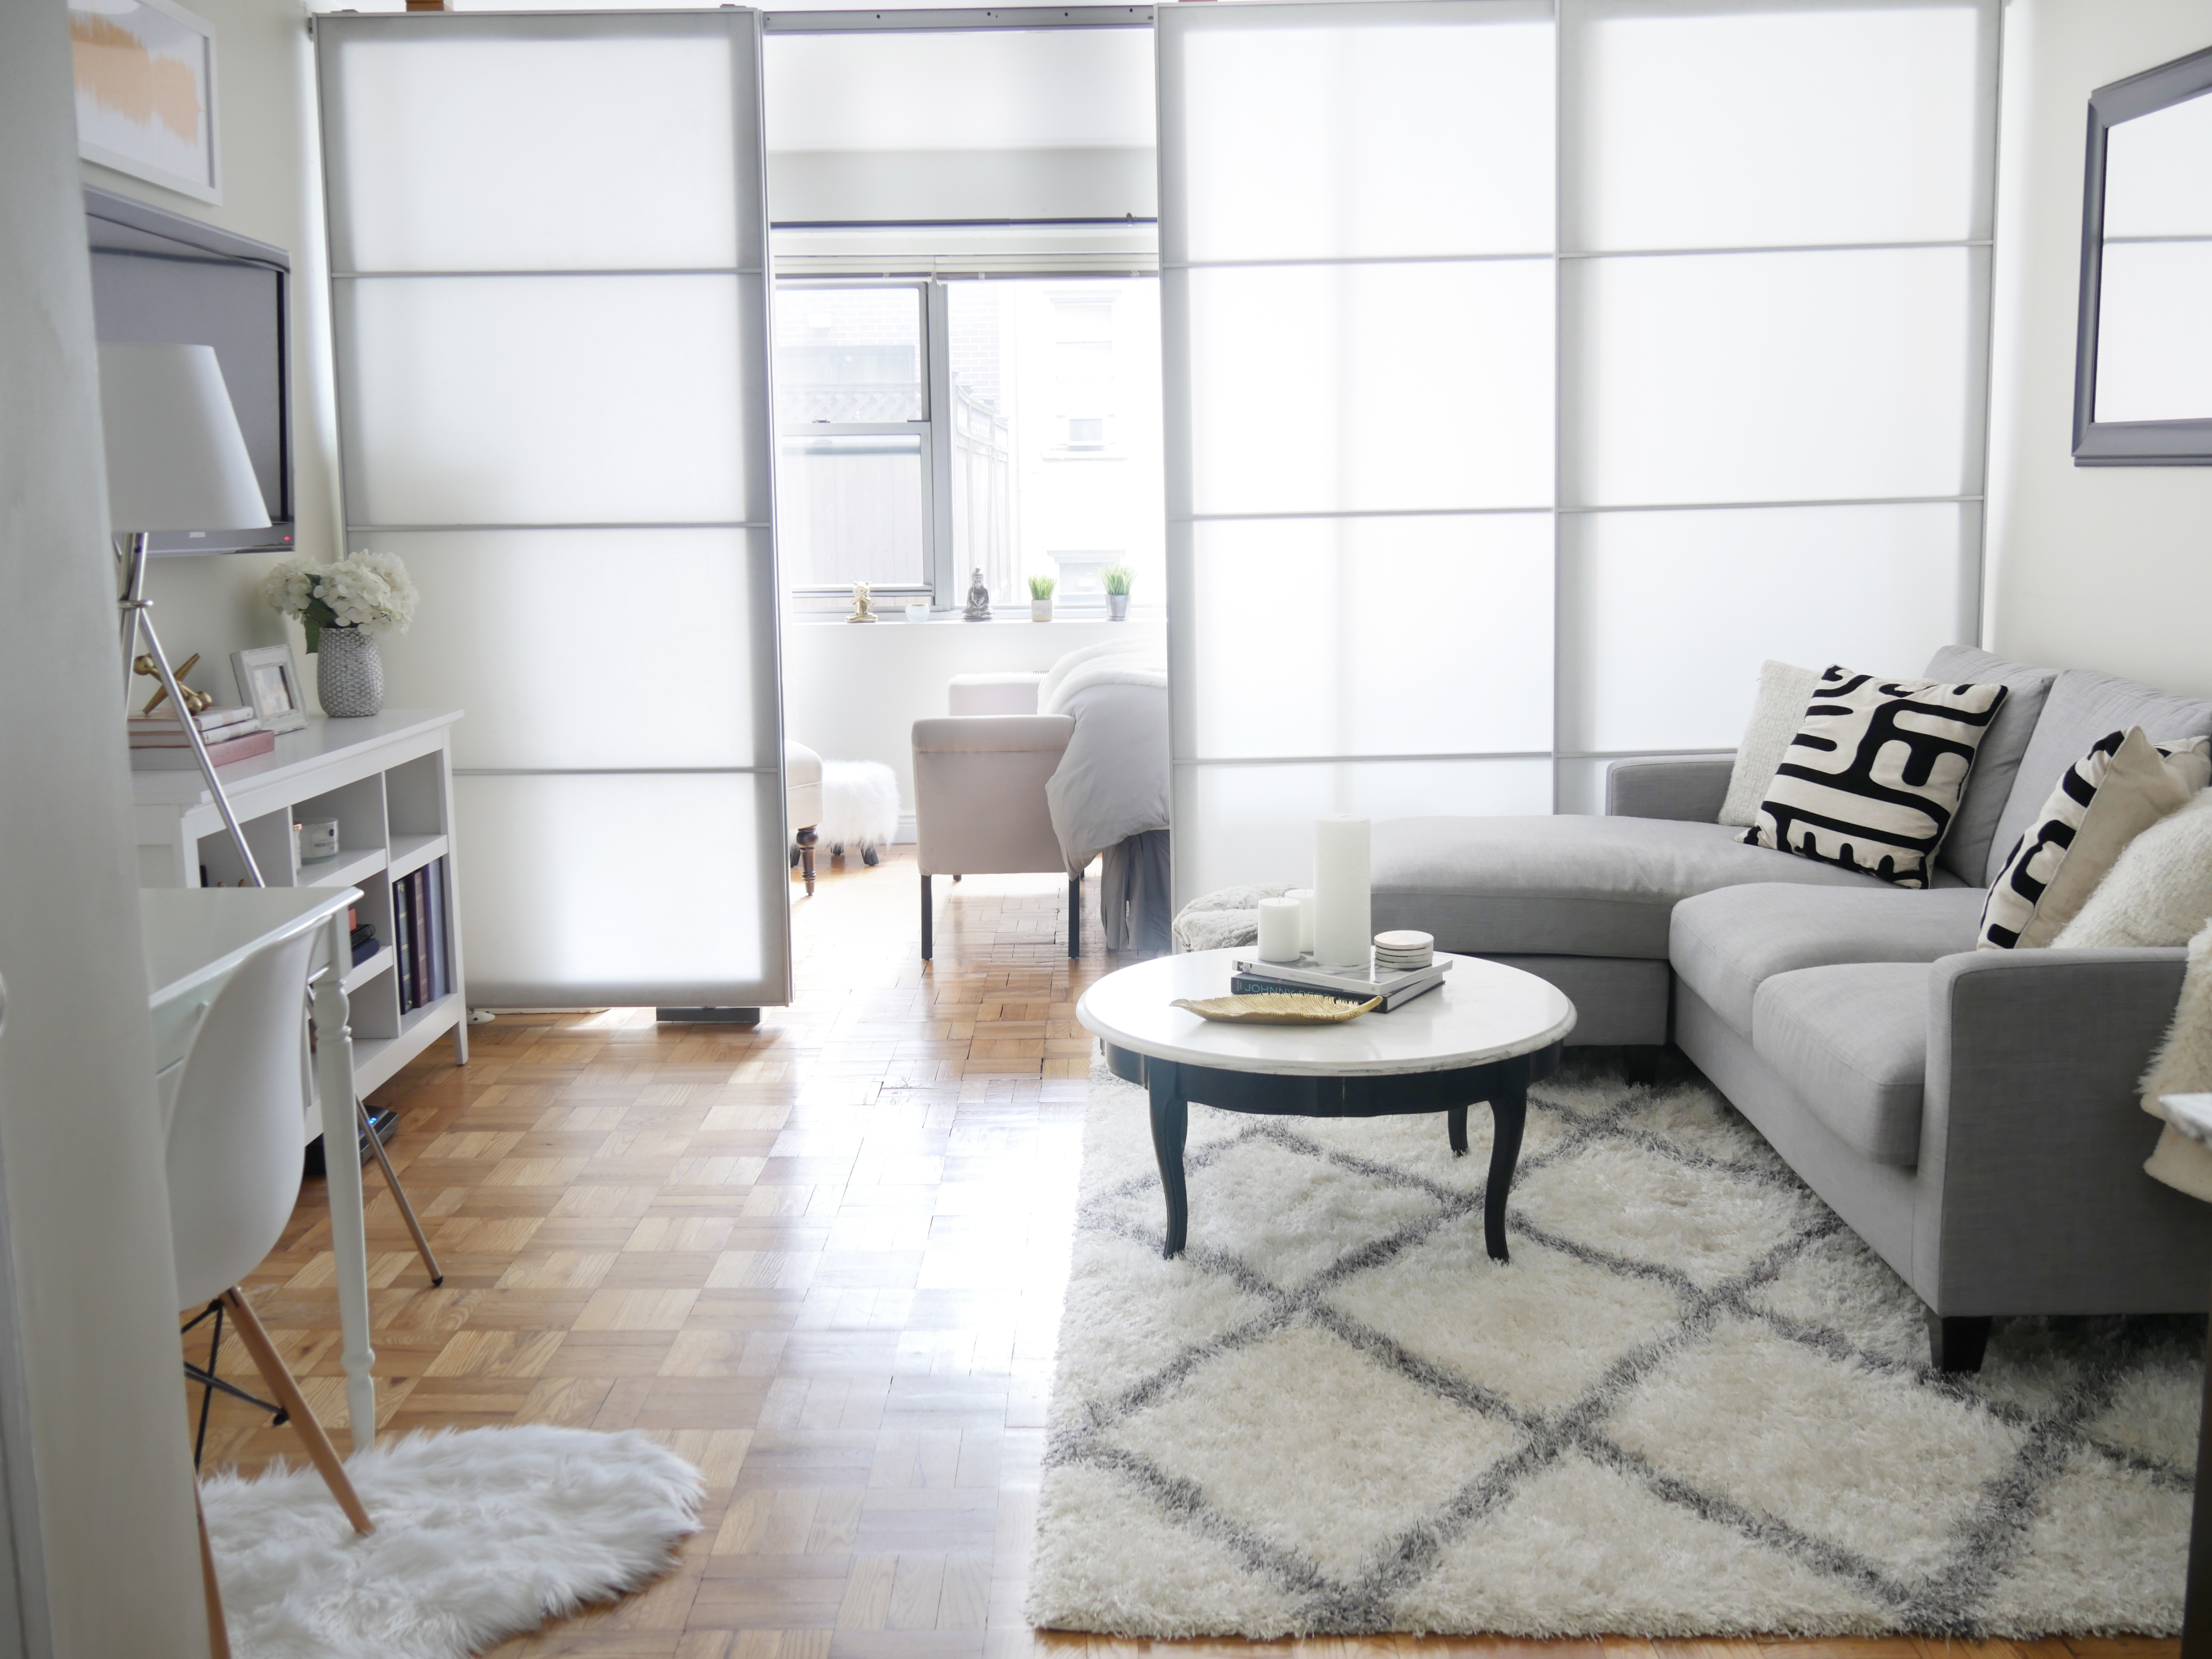 design living room apartment new york club before after chic meets glam inside a nyc studio city as stunning this is it didn t necessarily start out way took few months to create the dream space jackie was hoping for